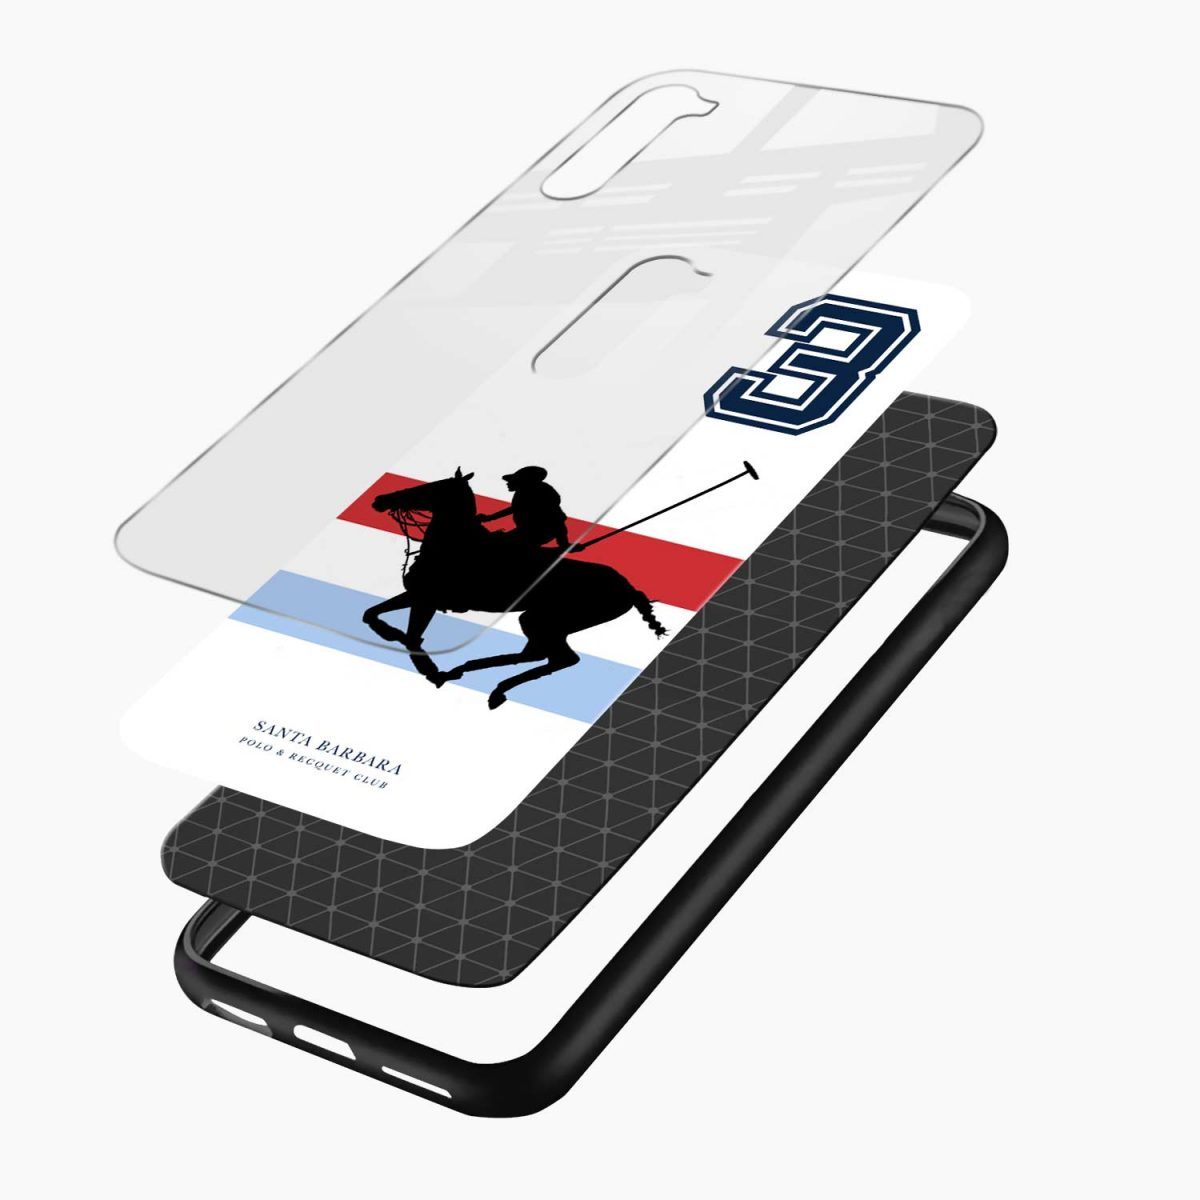 sant barbara polo layers view oneplus nord back cover